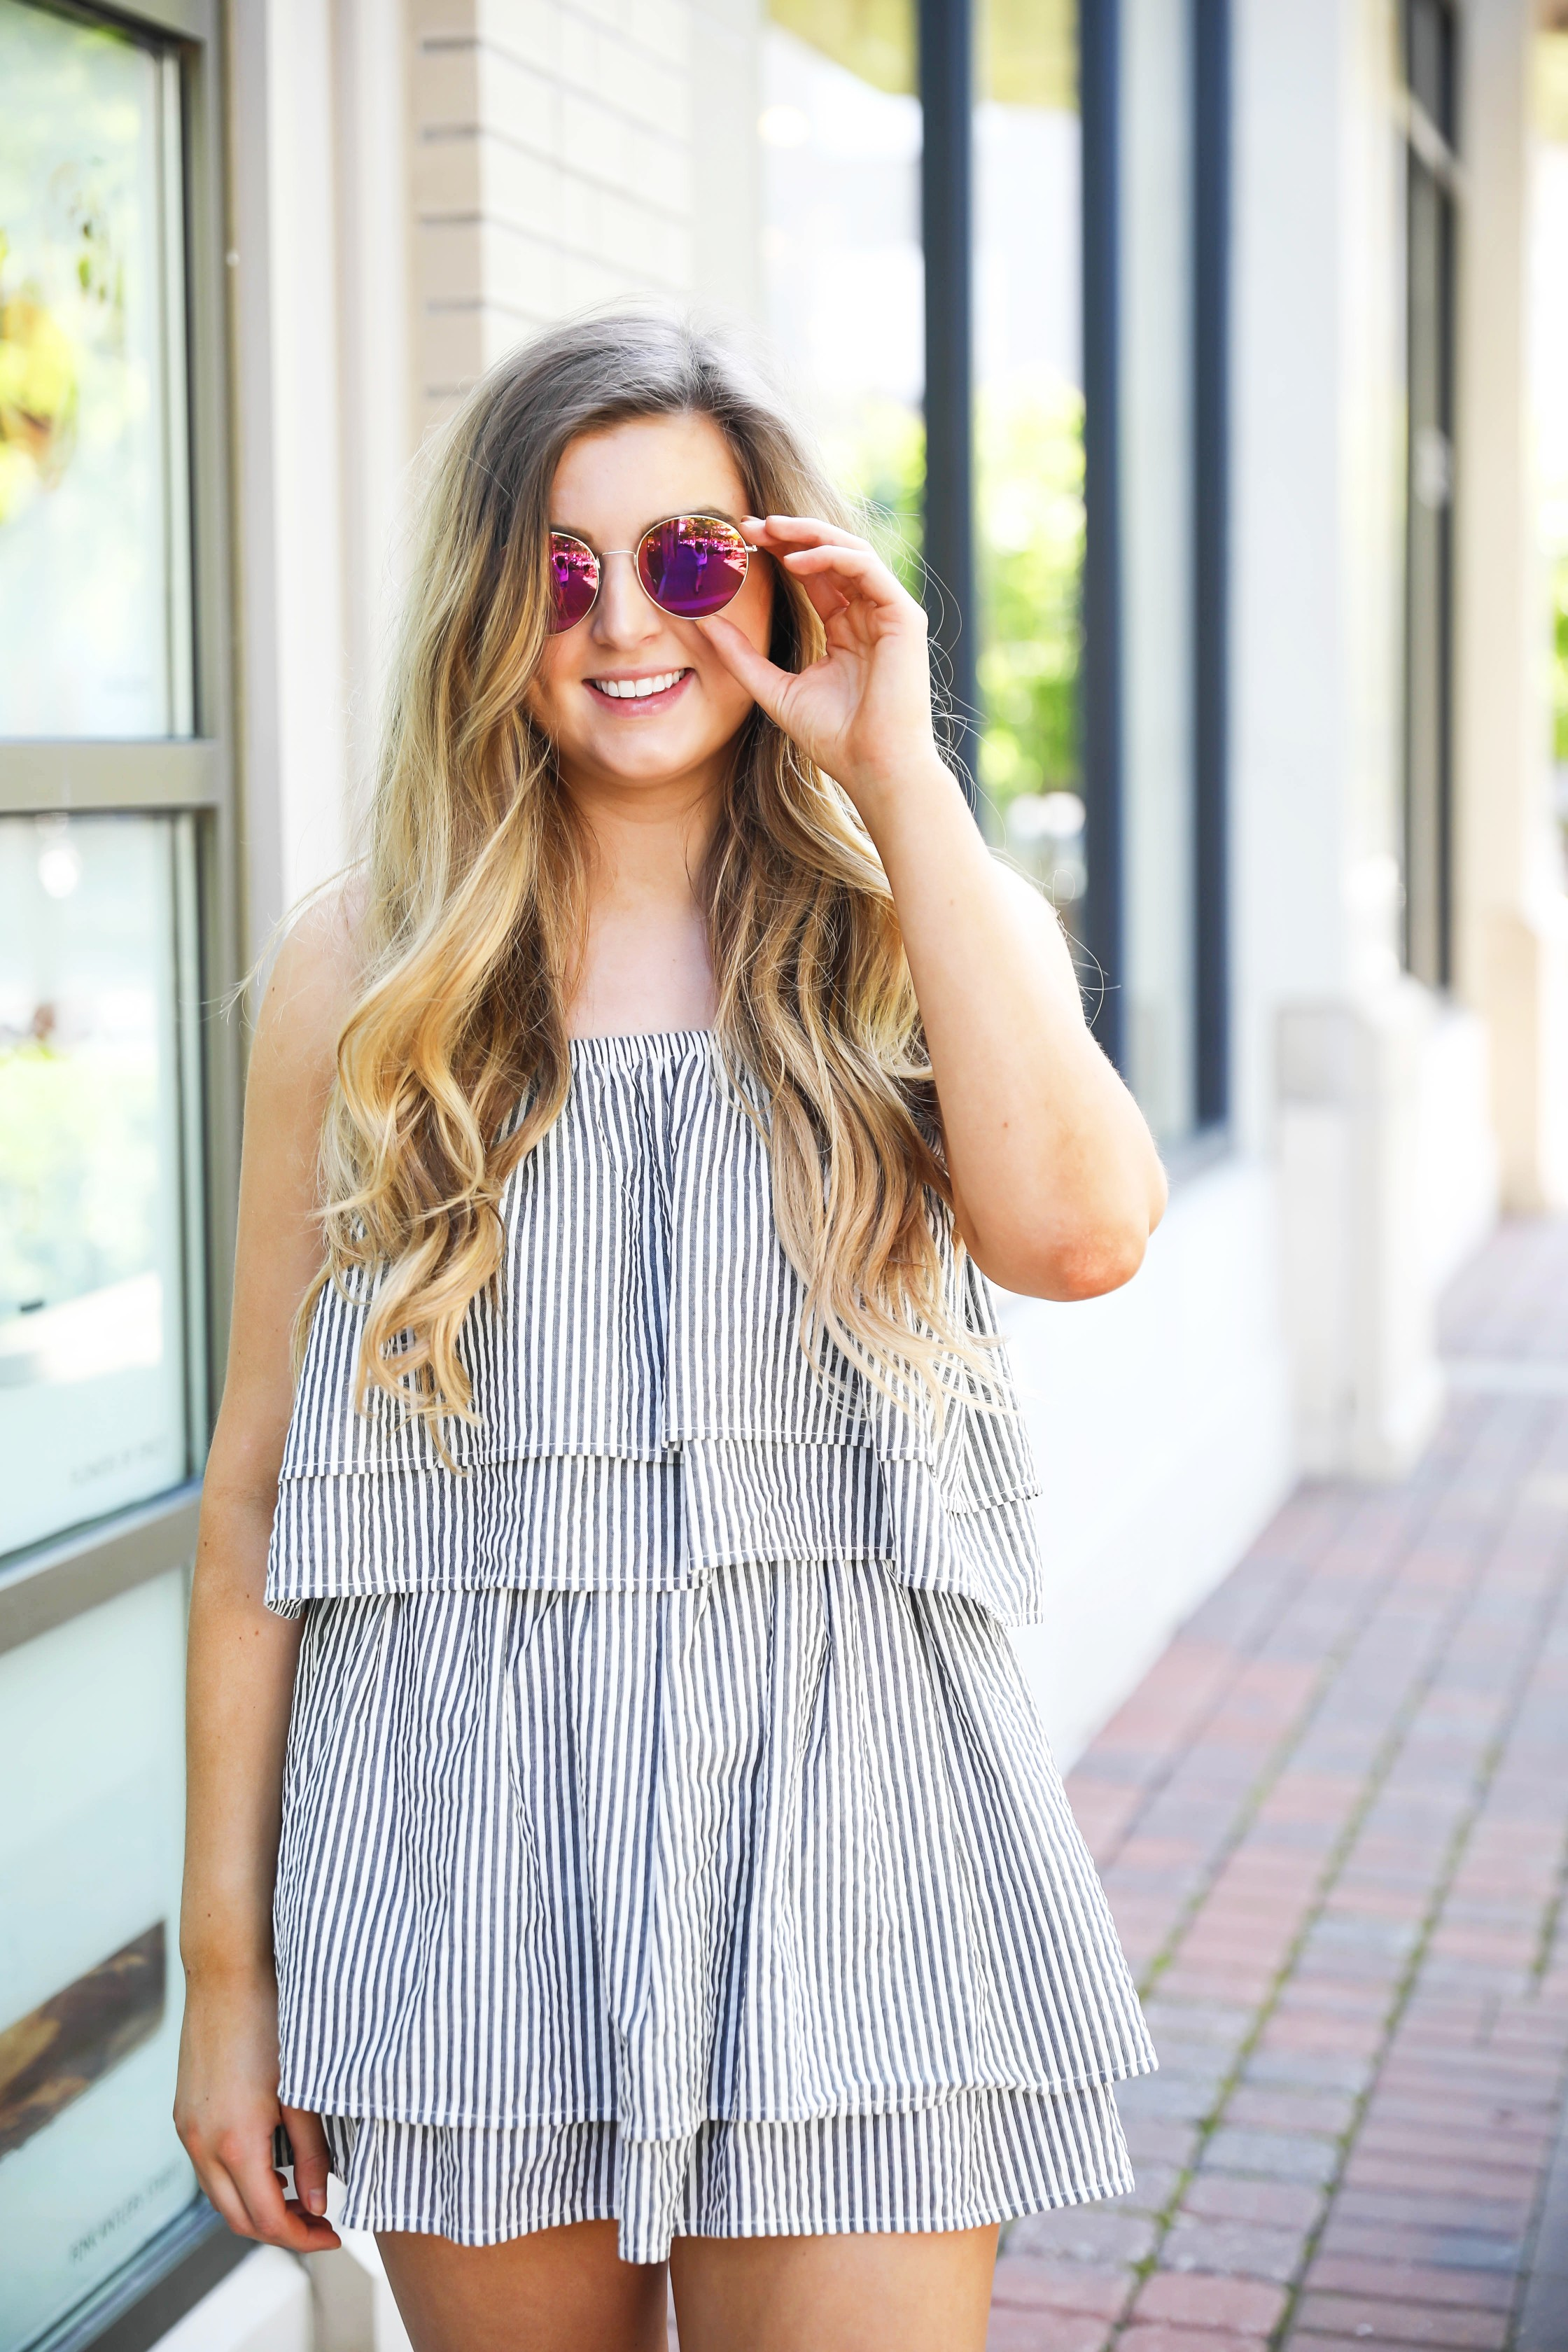 Striped ruffle dress with circle sunglasses and brown leather sandals! By Lauren Lindmark on dailydoseofcharm.com fashion blog daily dose of charm